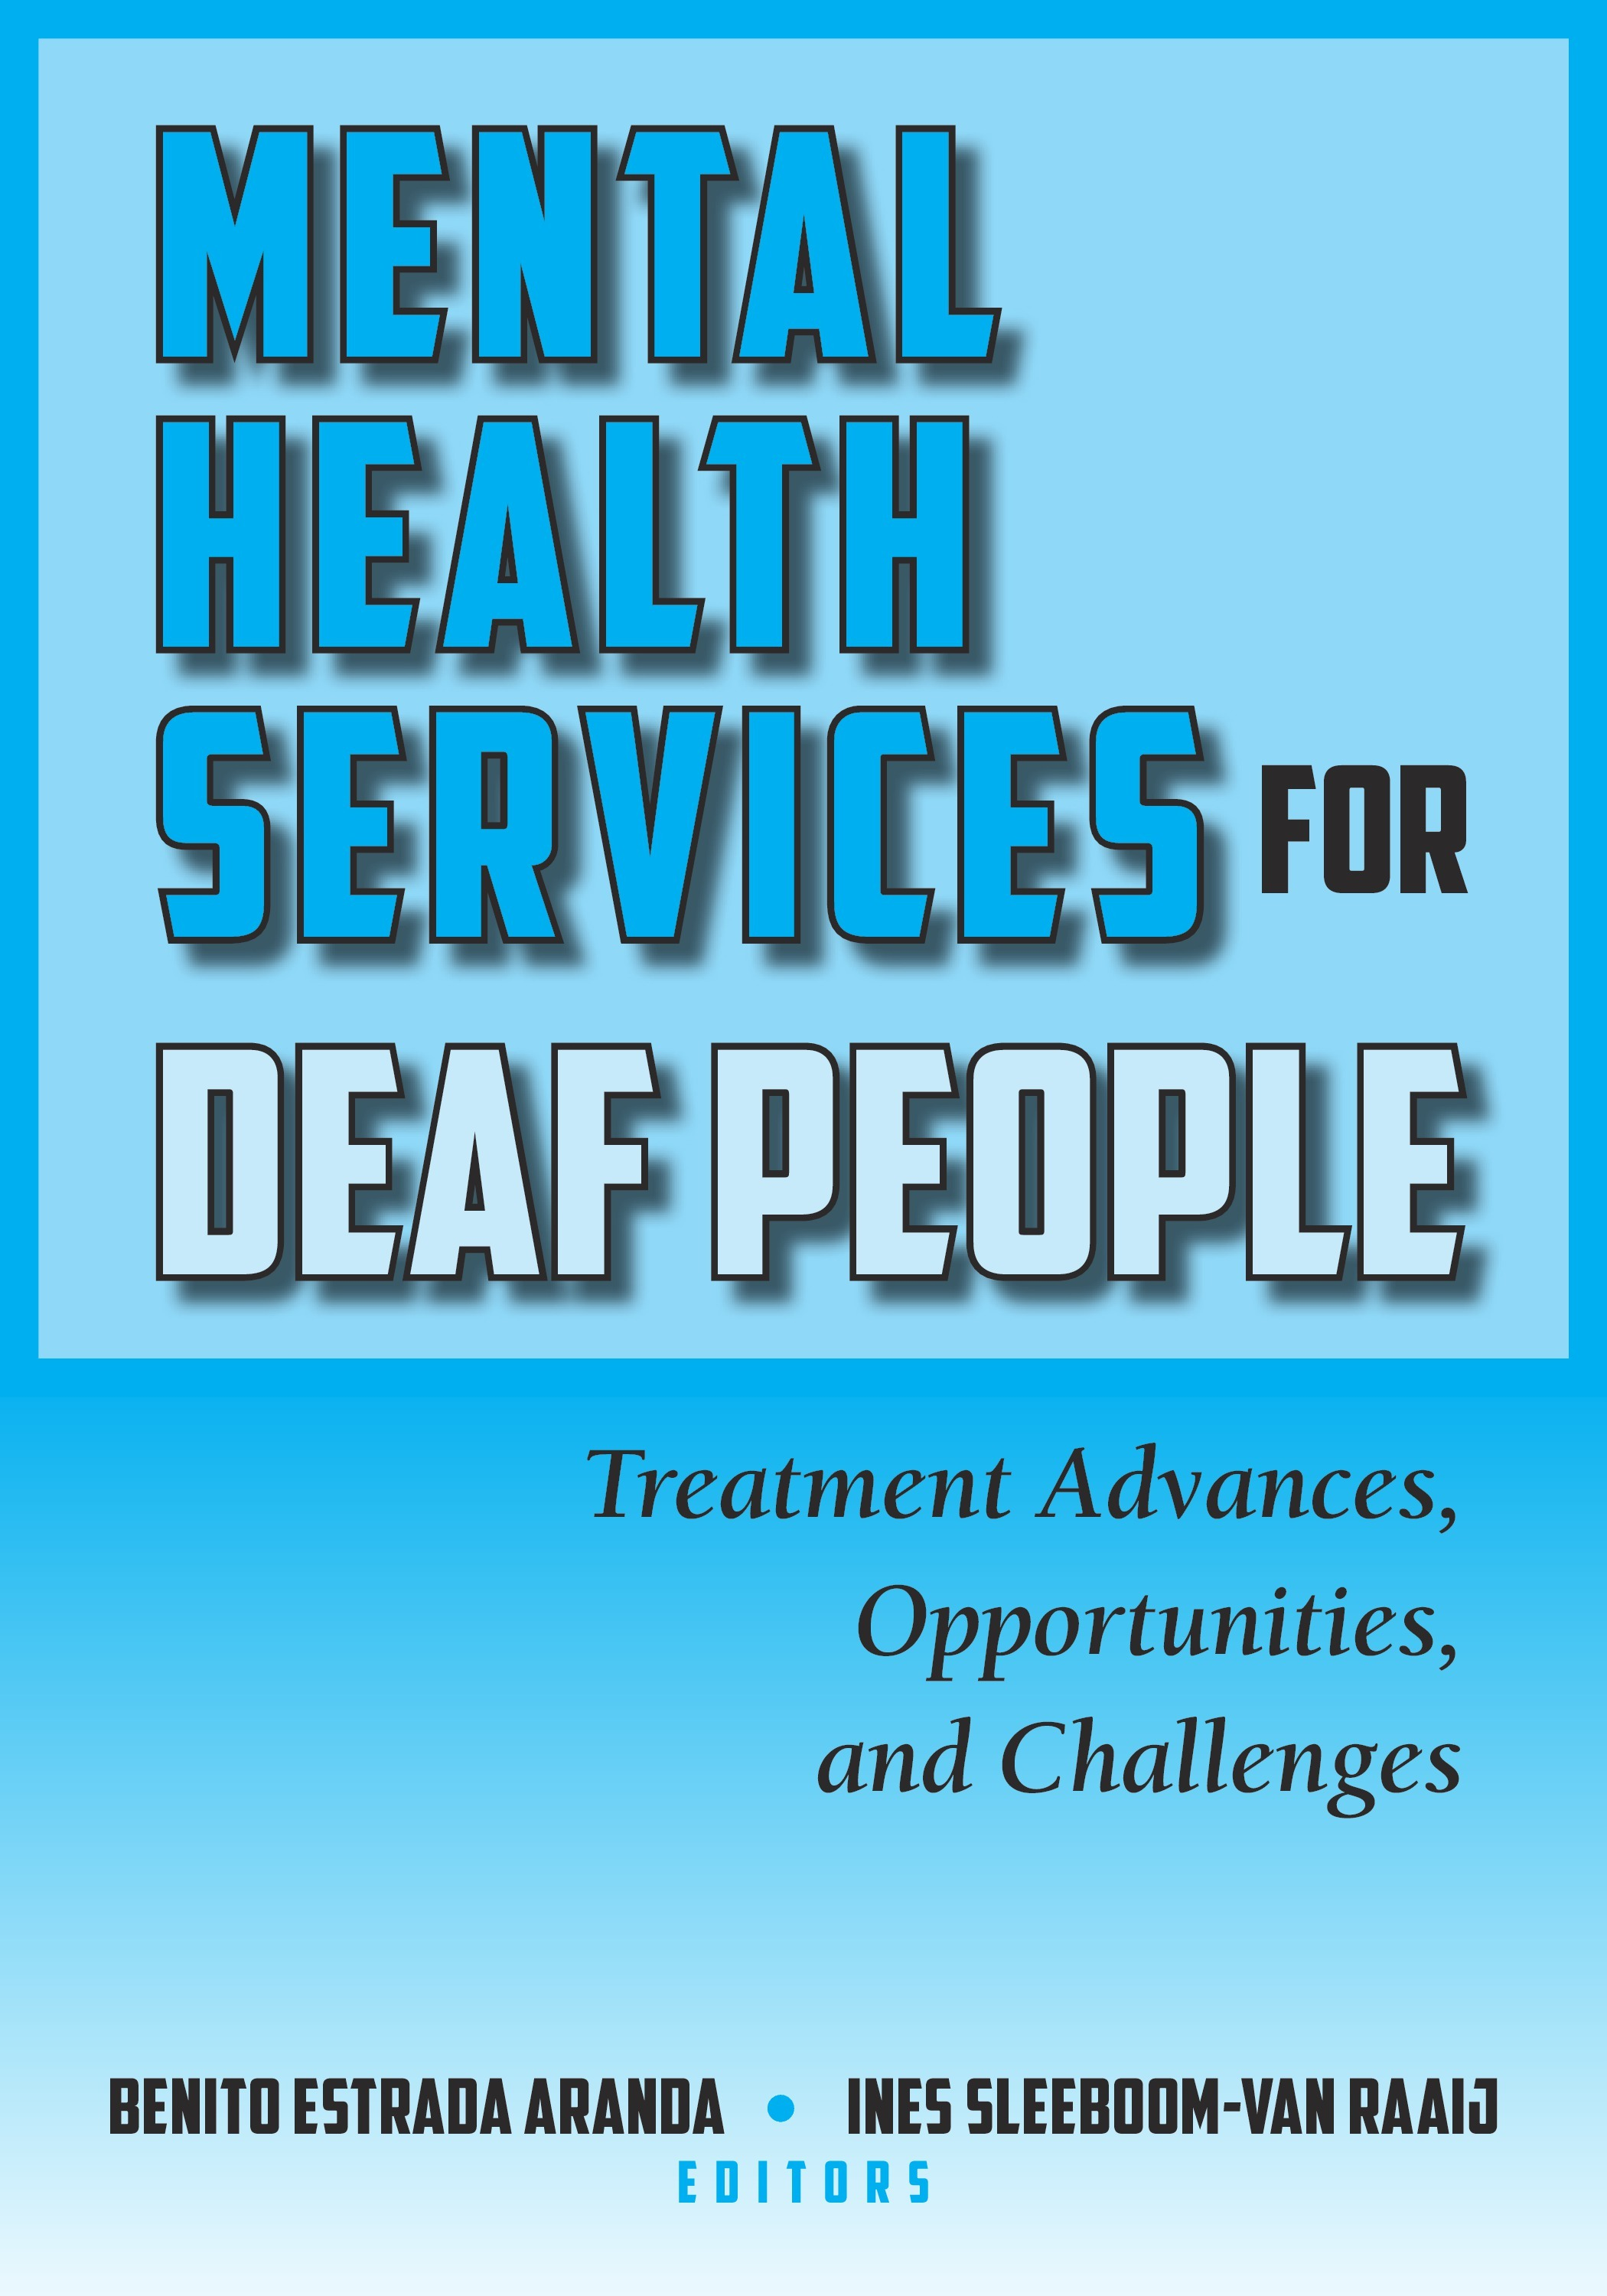 Mental Health Services for Deaf People Treatment Advances, Opportunities, and Challenges